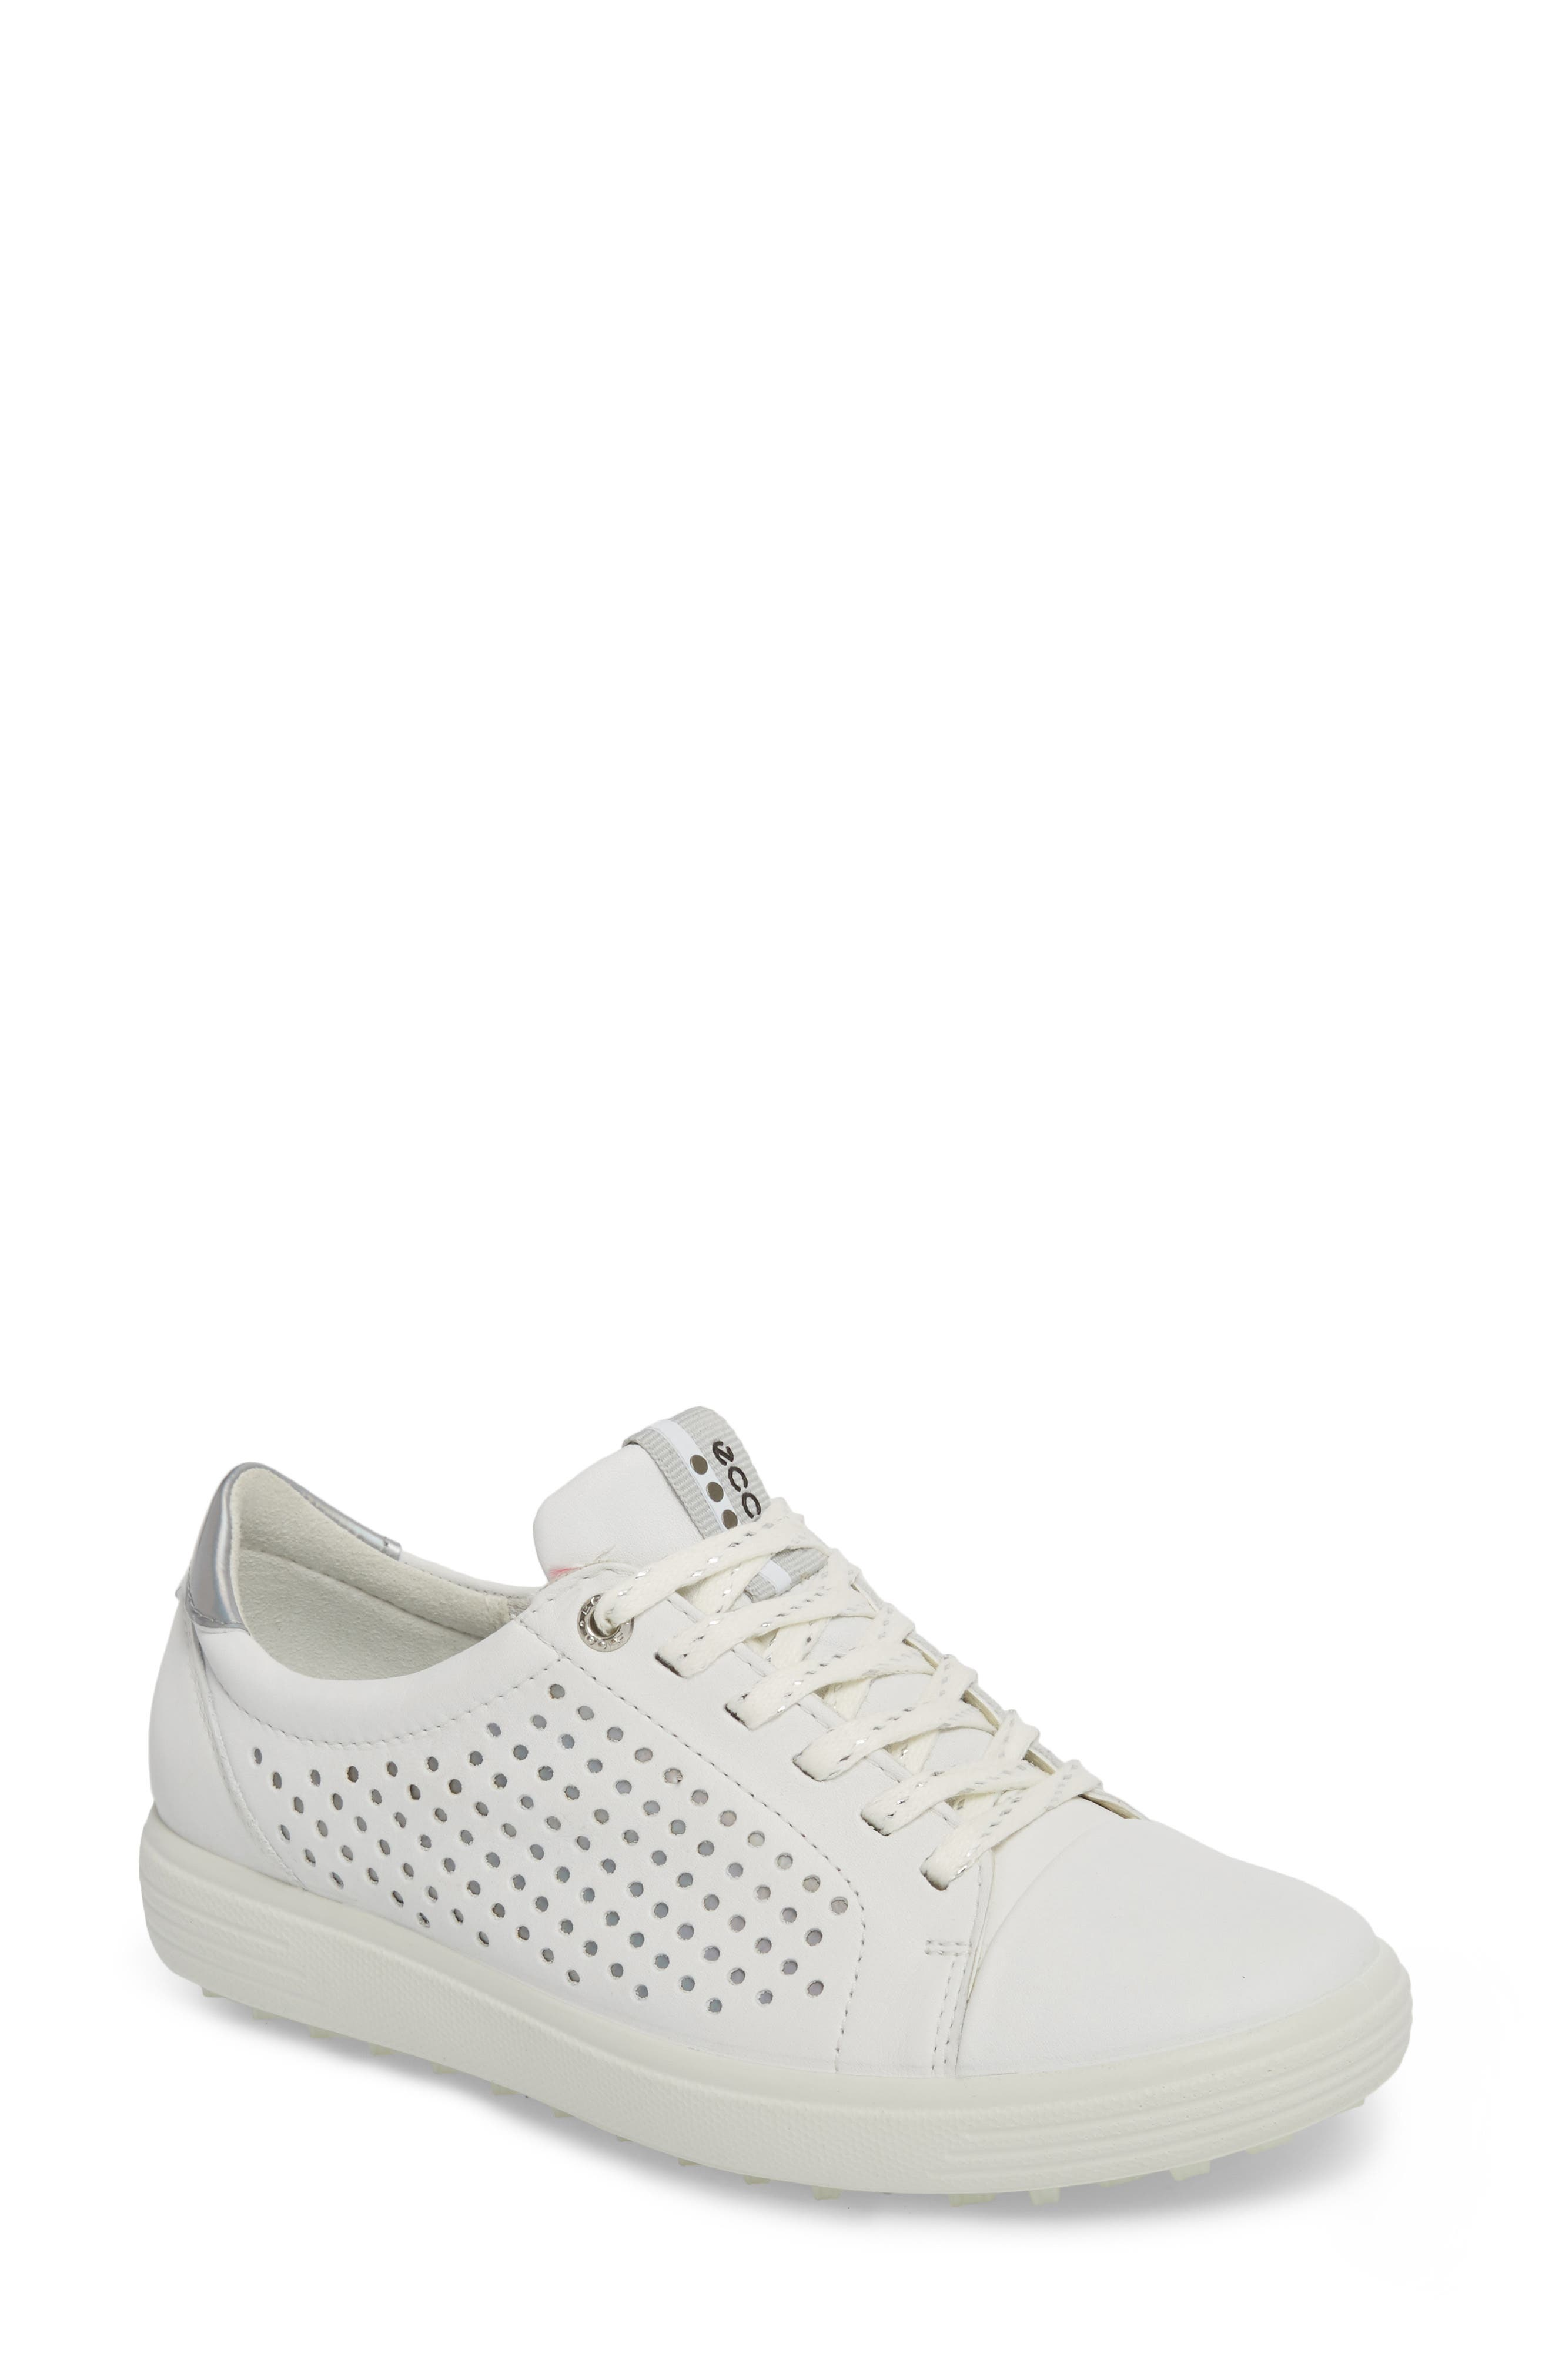 ECCO Casual Hybrid Water-Repellent Golf Shoe (Women)